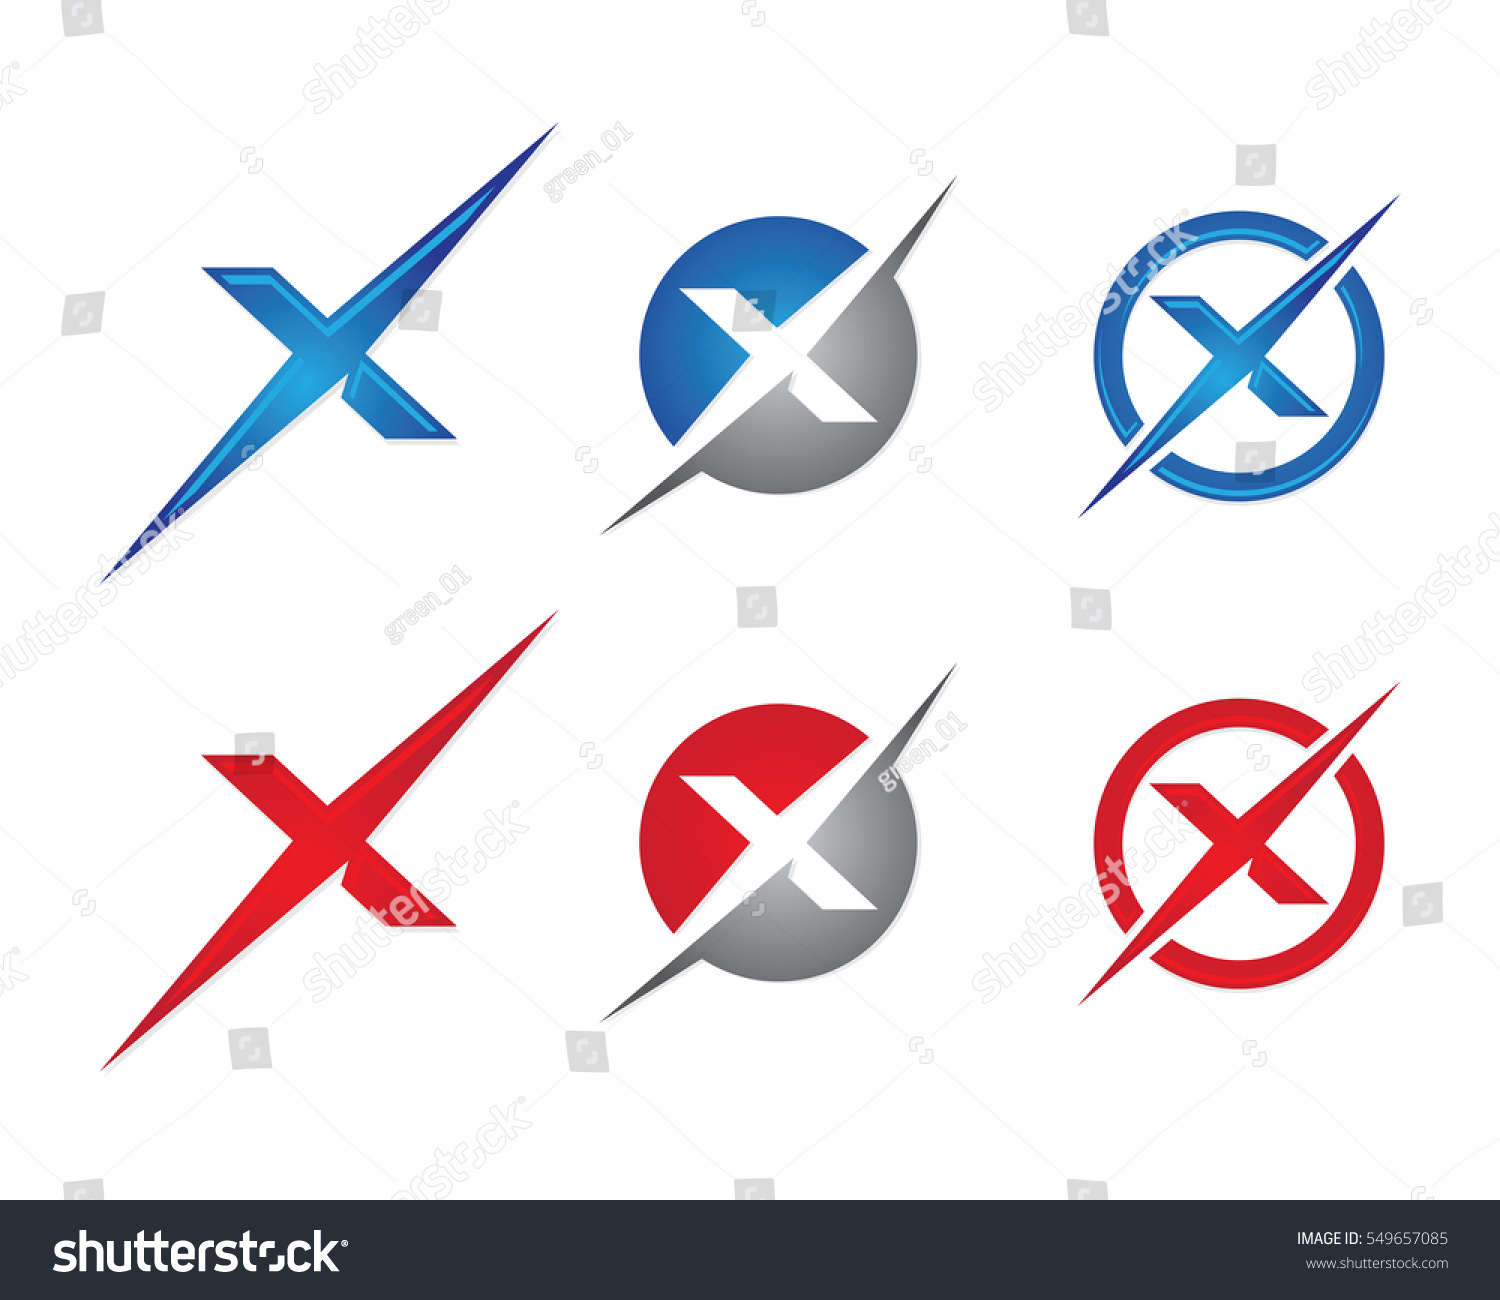 x letter logo template vector icon stock vector 549657085